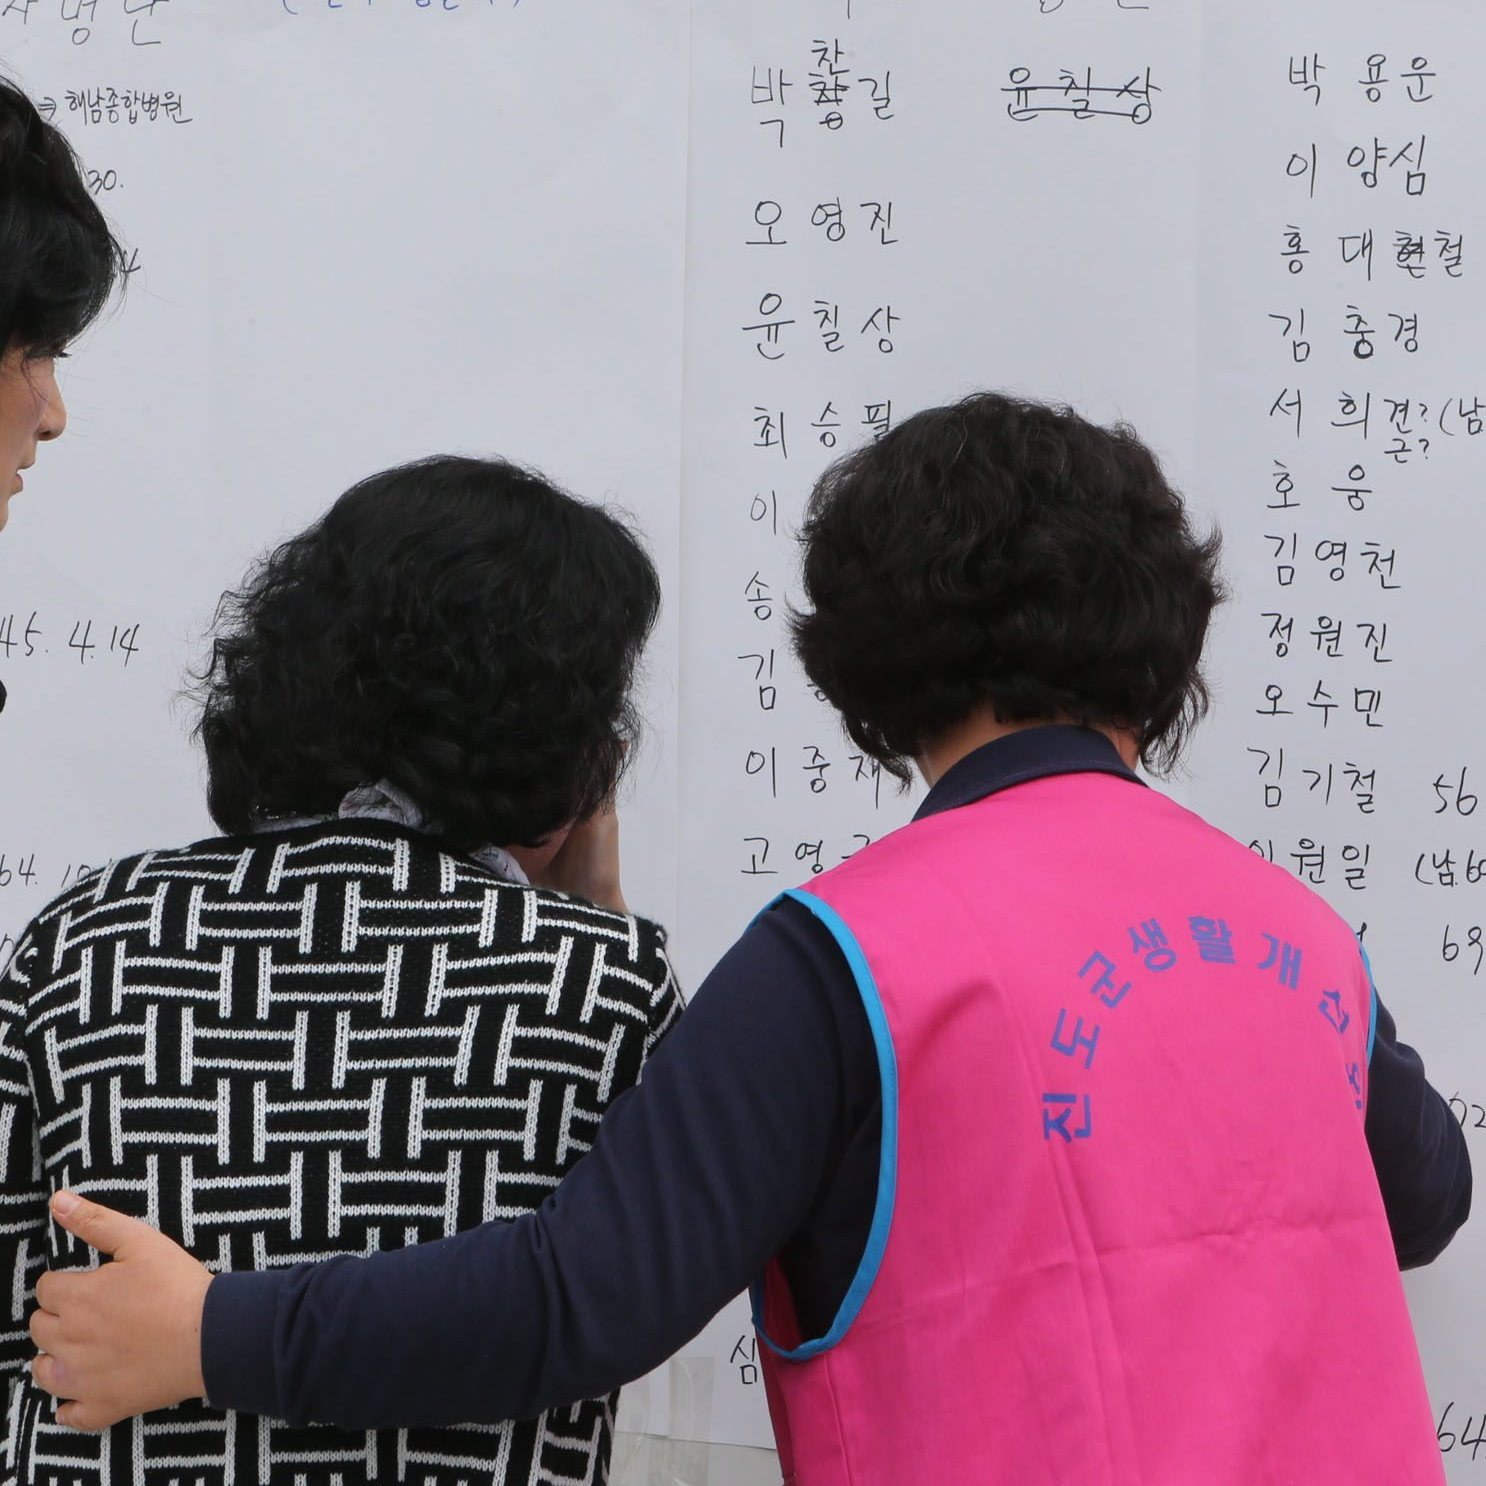 Family members of passengers on a South Korean ferry that sank look at lists of survivors on Wednesday.